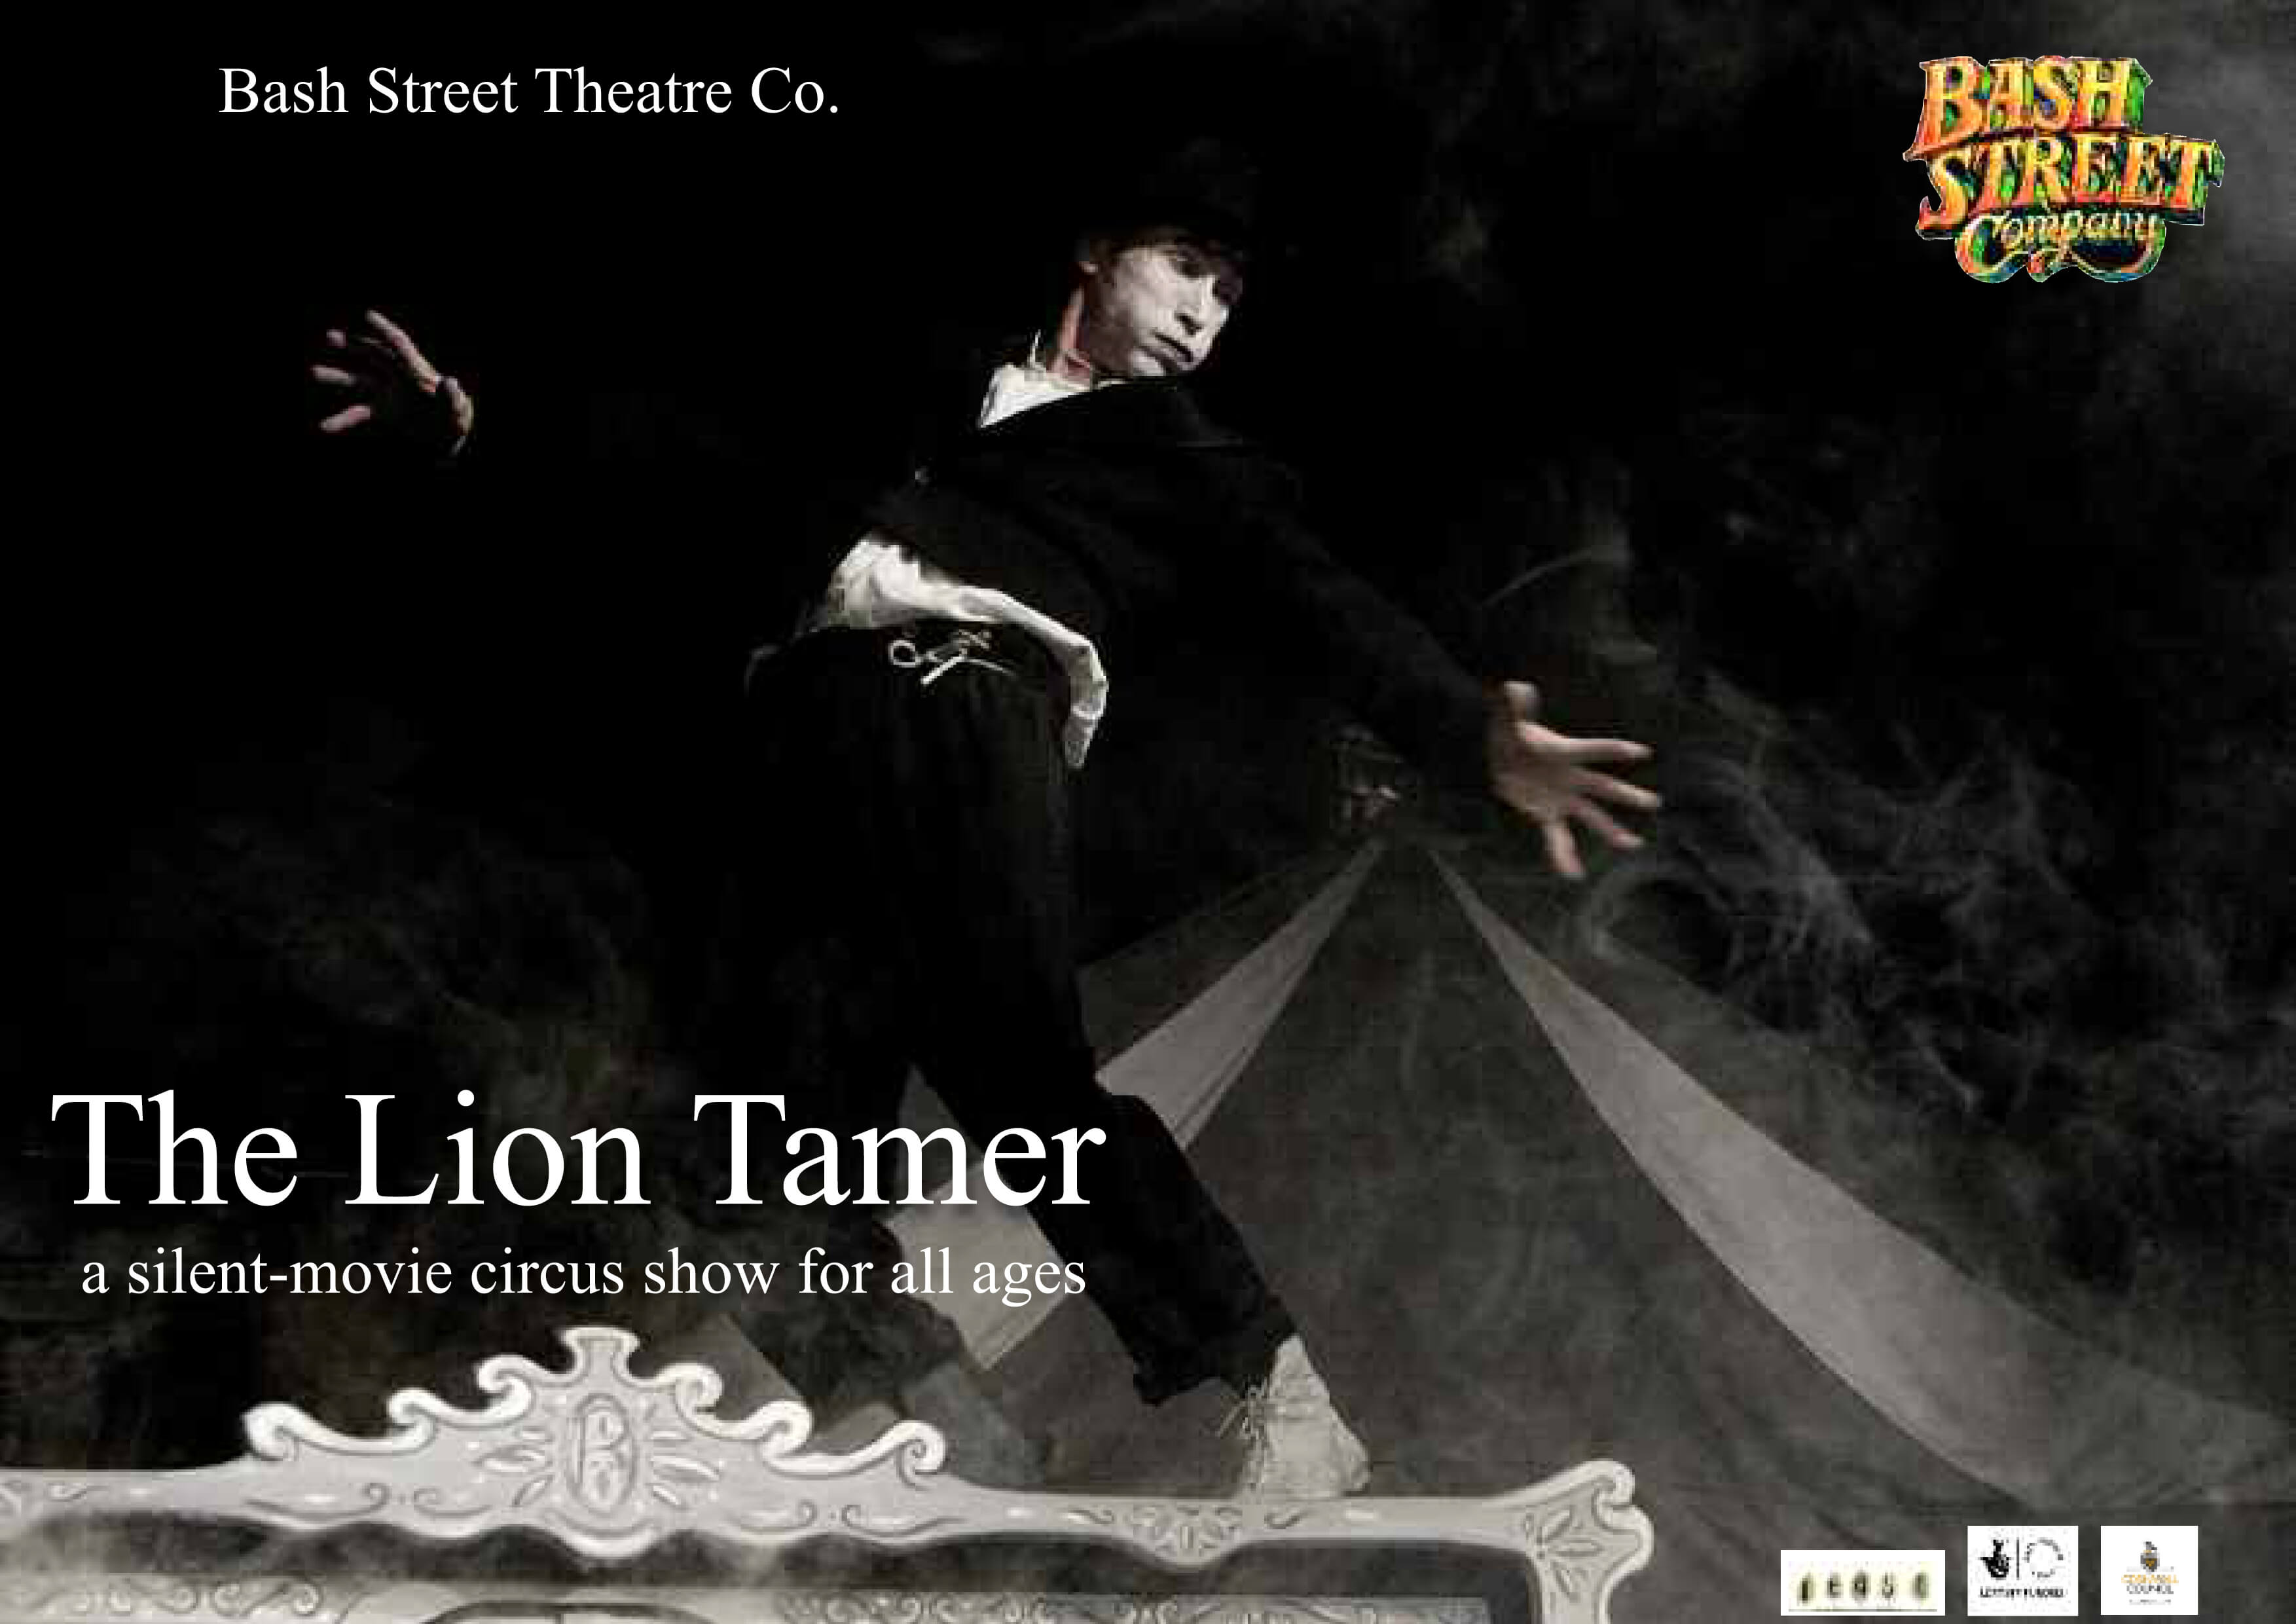 Bash Street Theatre present The Lion Tamer